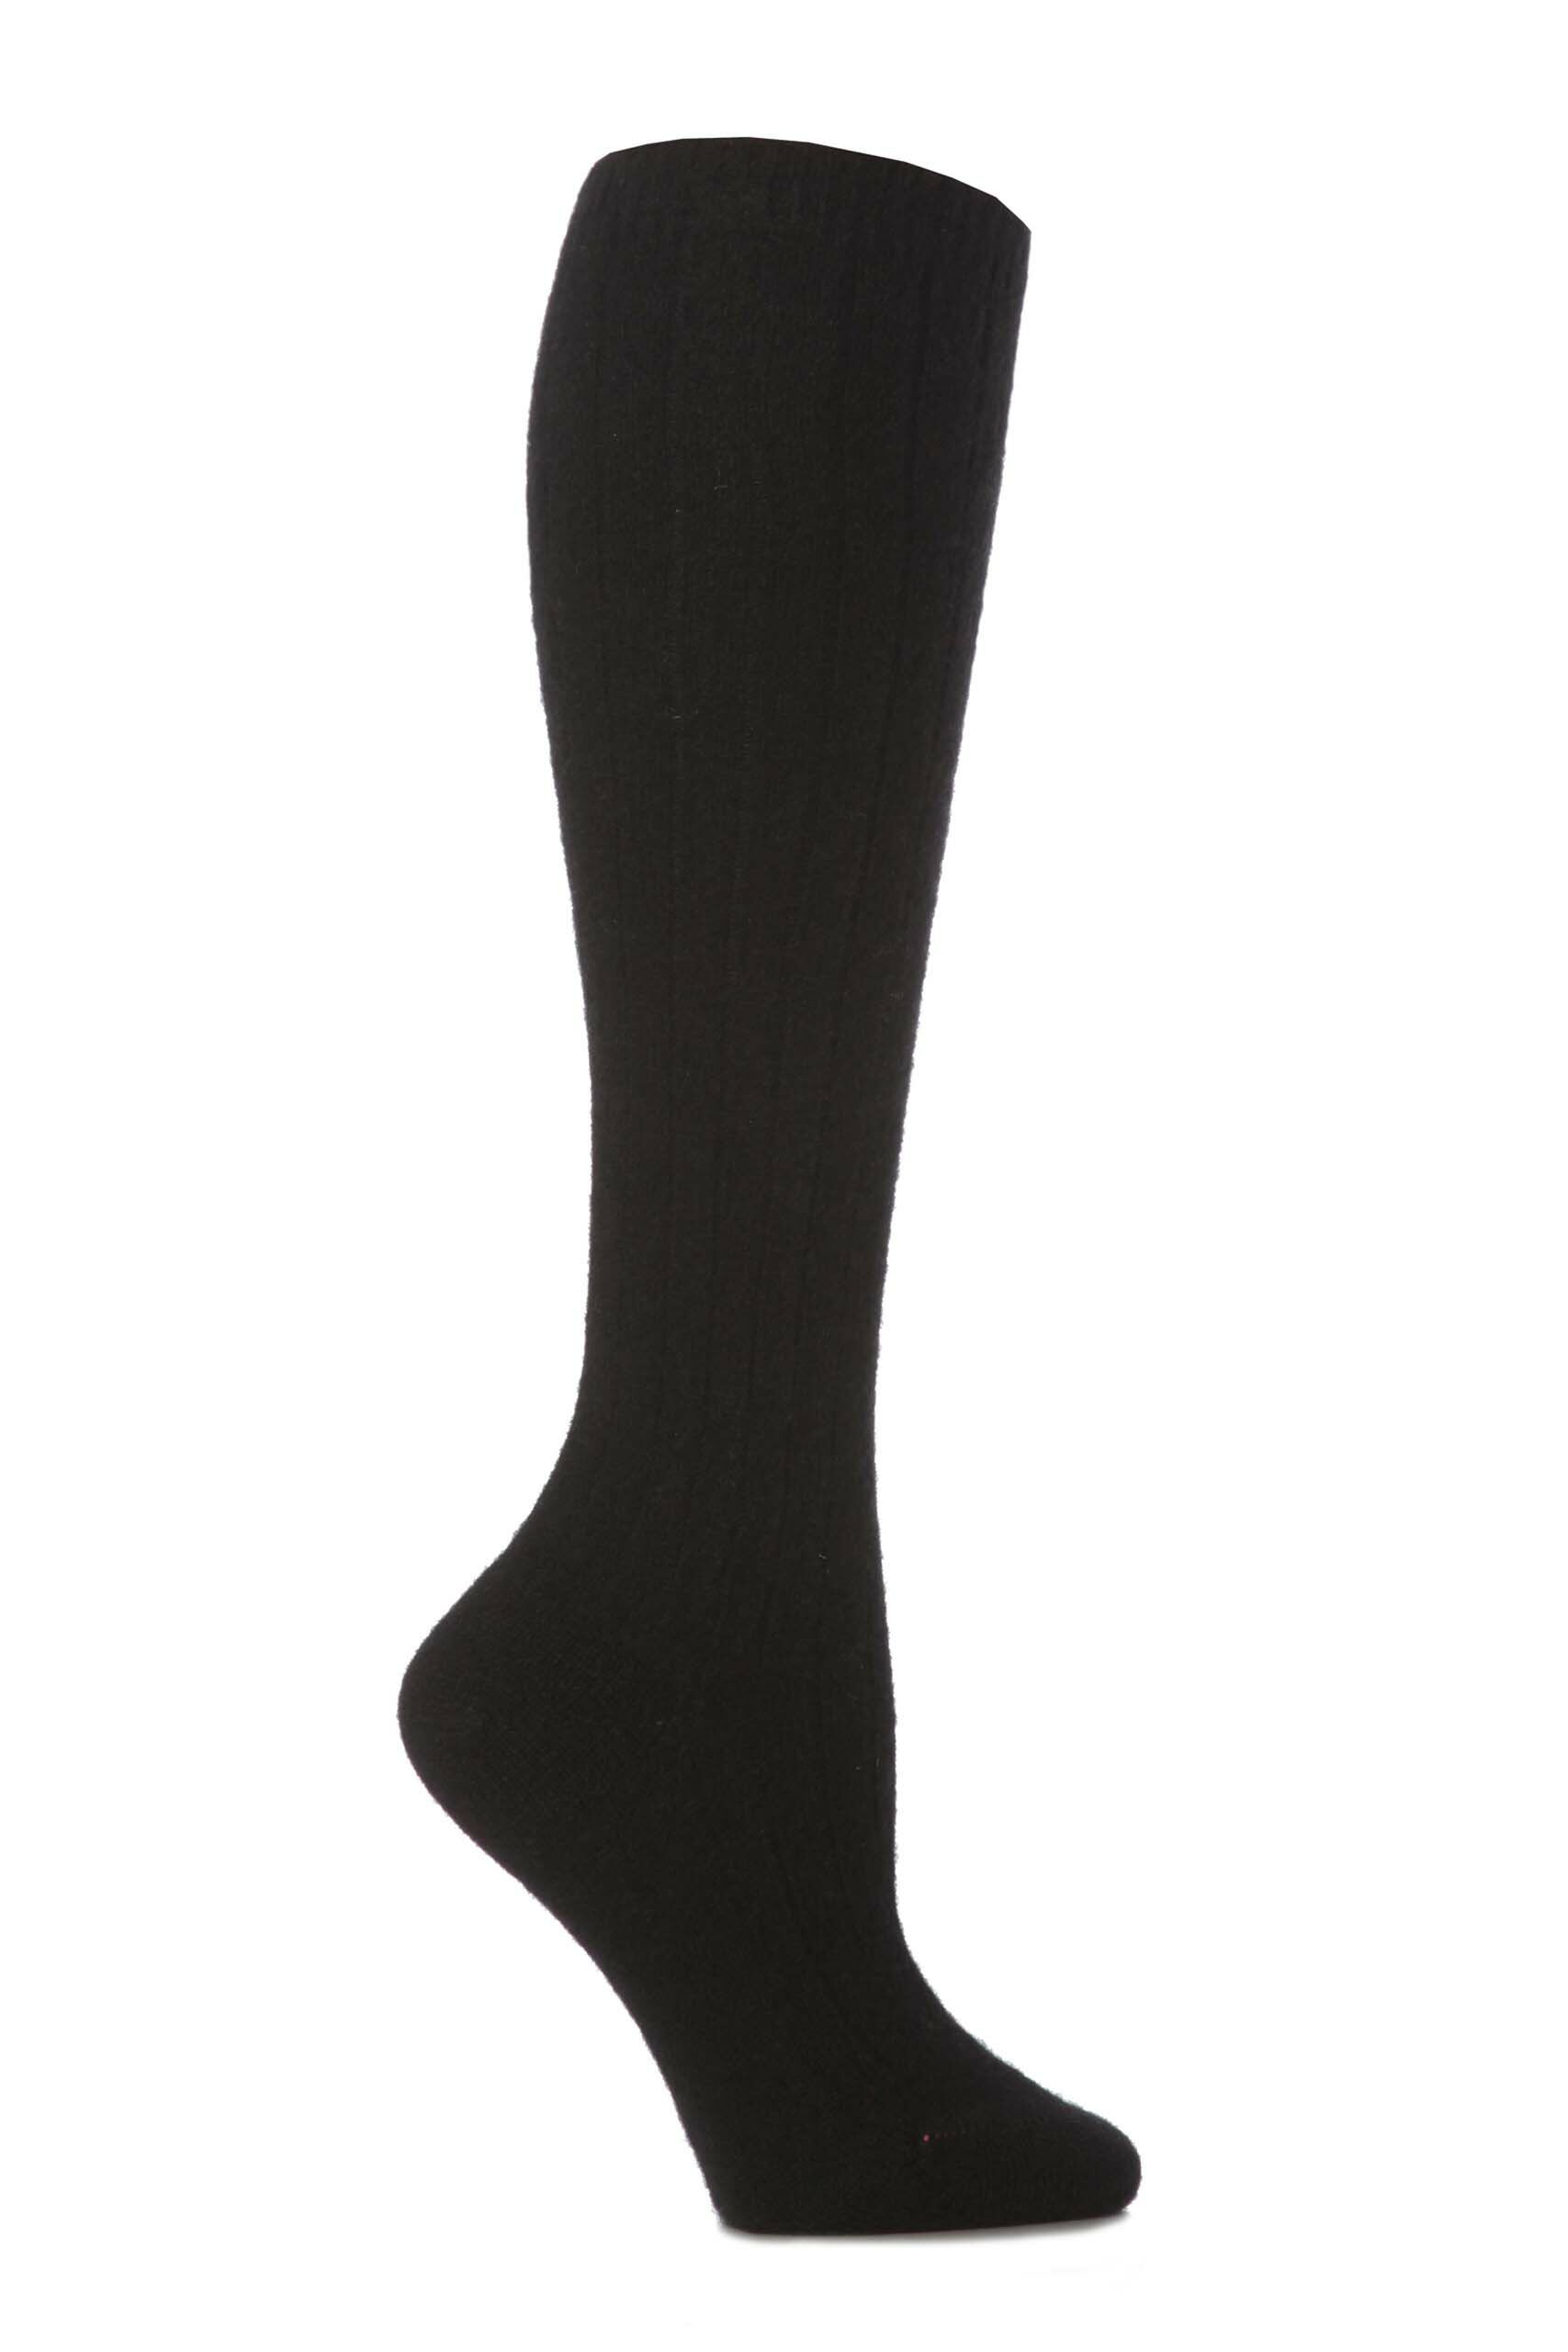 Image of 1 Pair Black 85% Cashmere Rib Knee High Ladies 4-7 Ladies - Pantherella